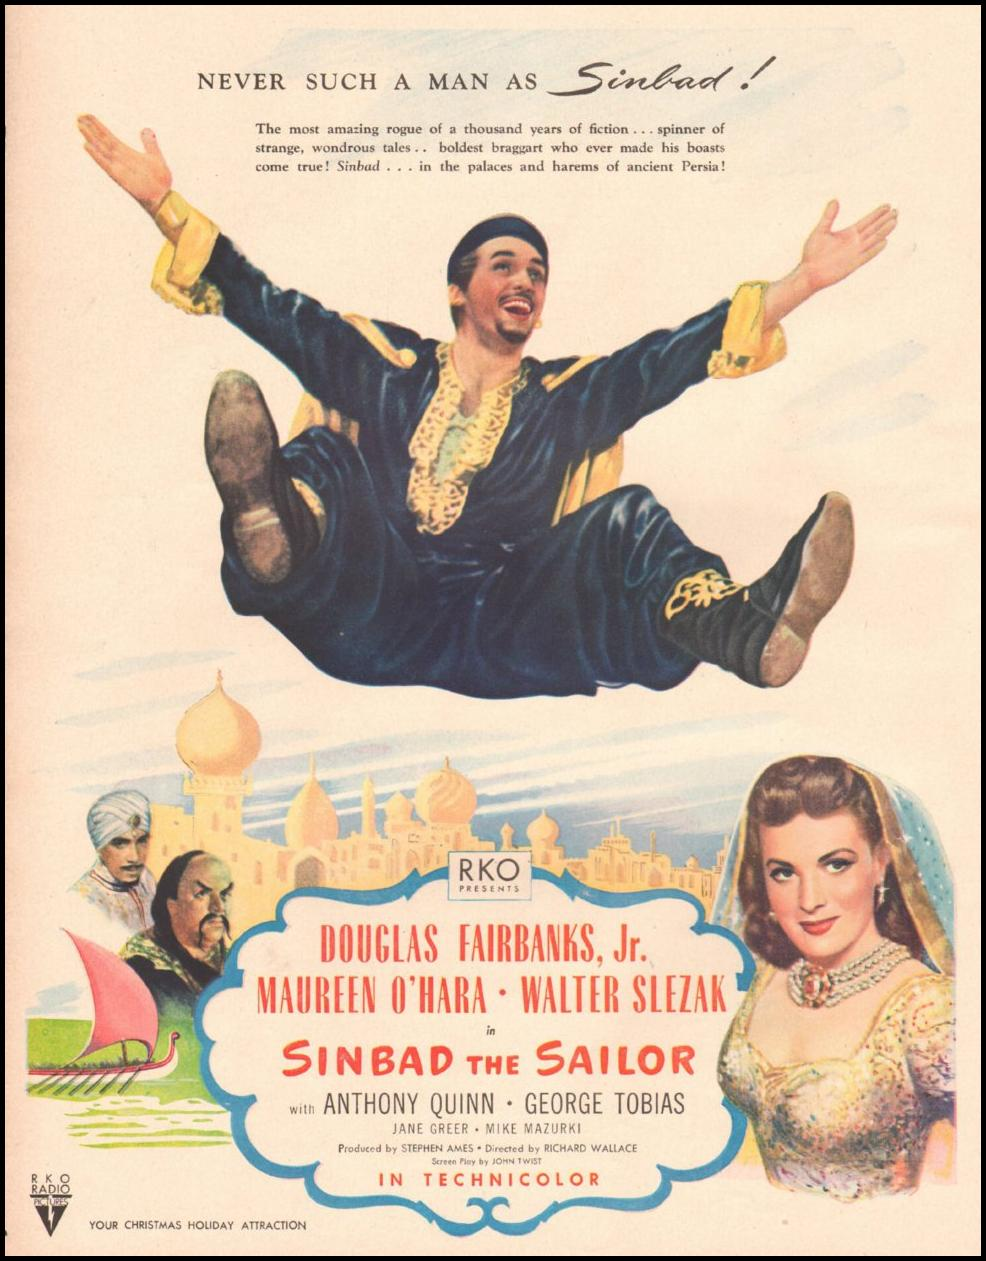 SINBAD THE SAILOR LIFE 11/25/1946